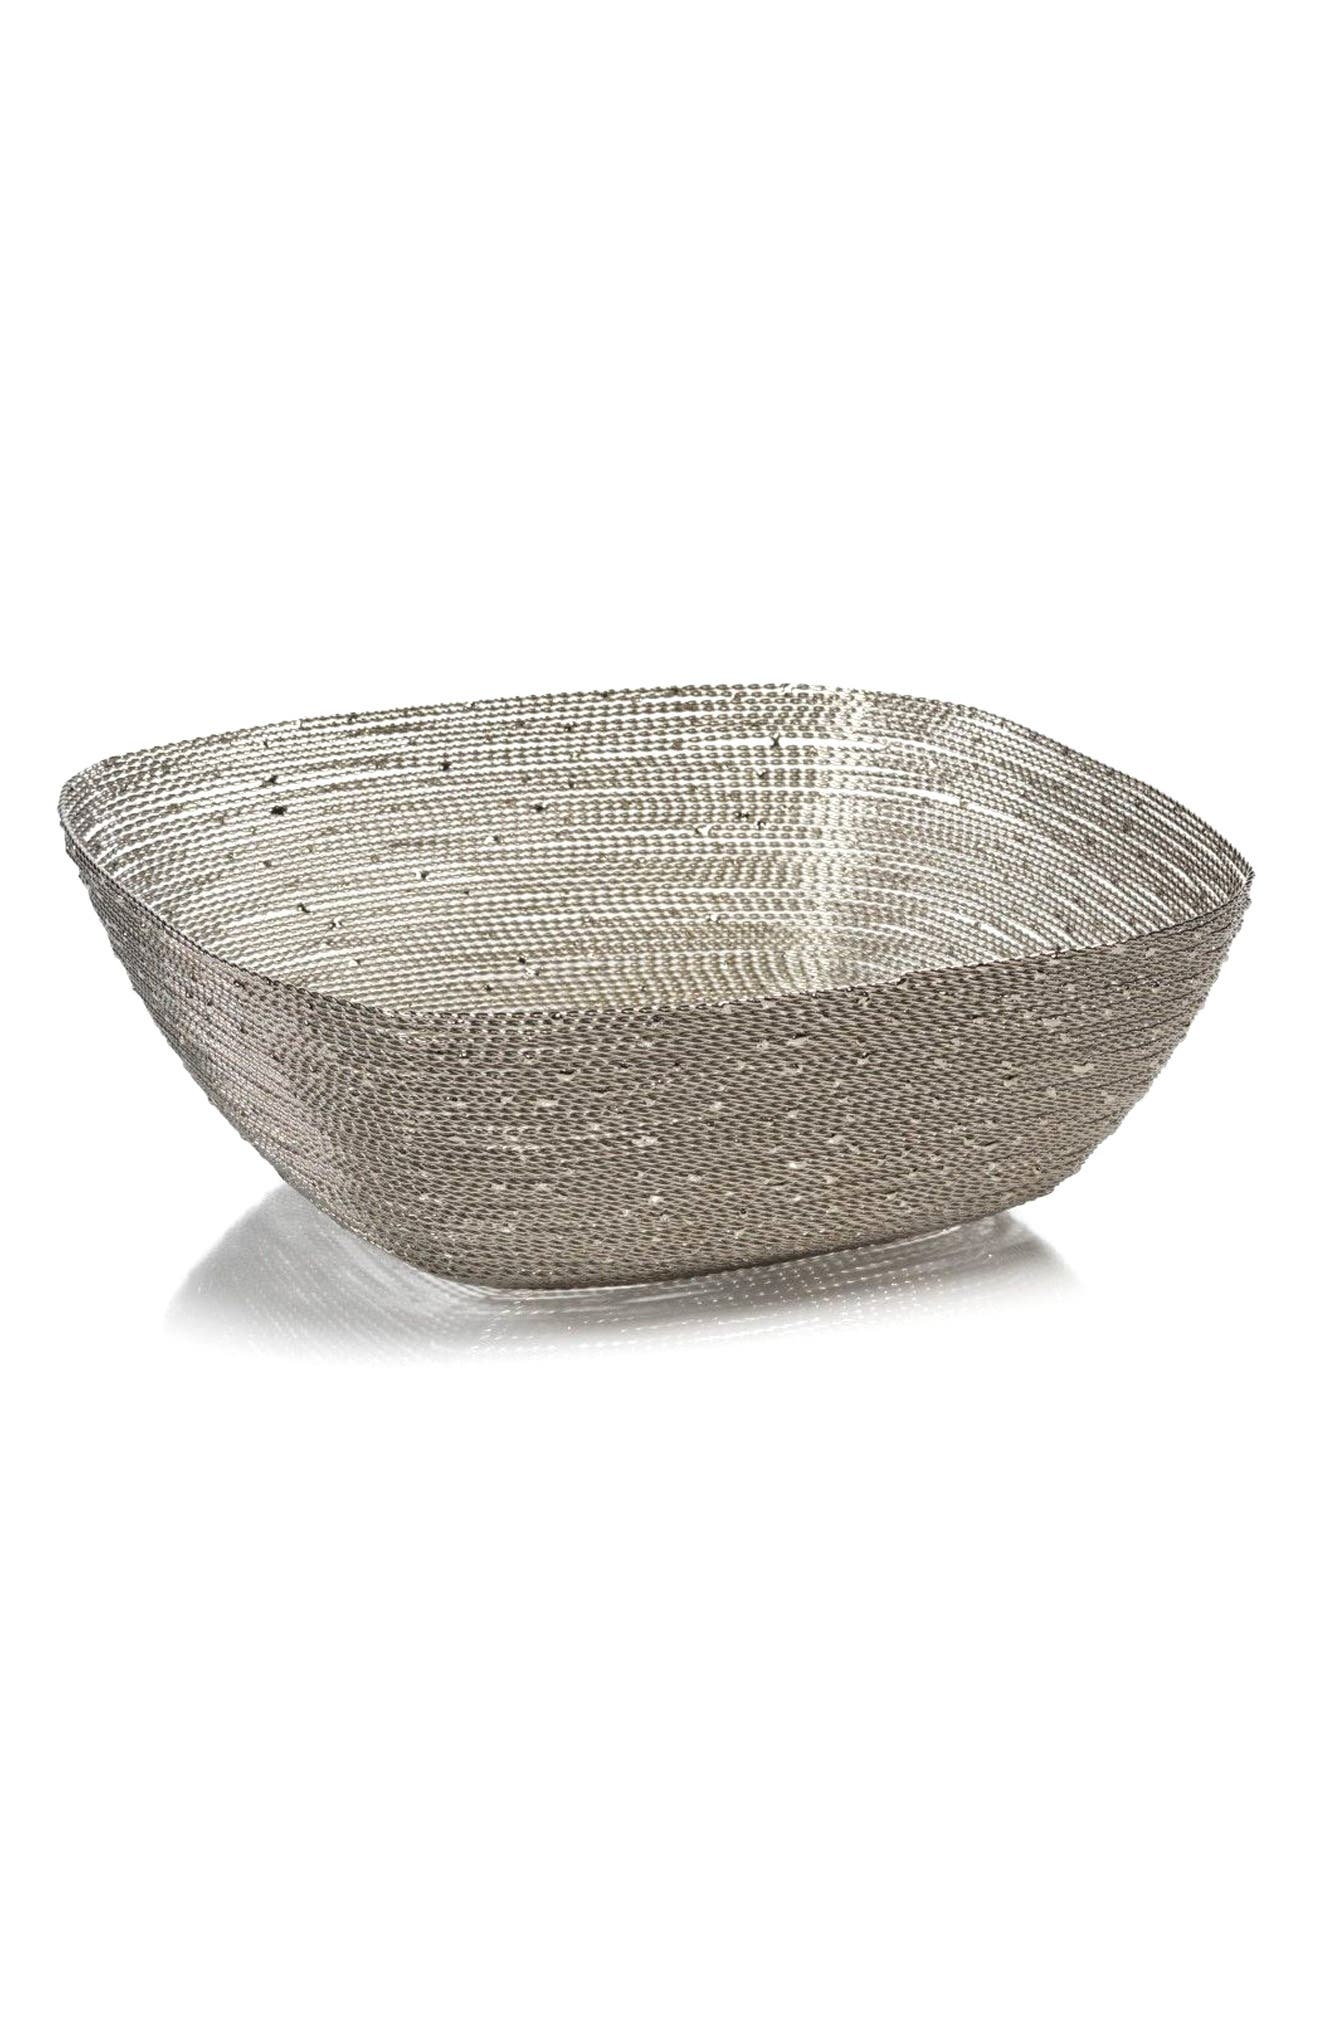 Zulu Large Square Woven Wire Basket,                         Main,                         color, Silver